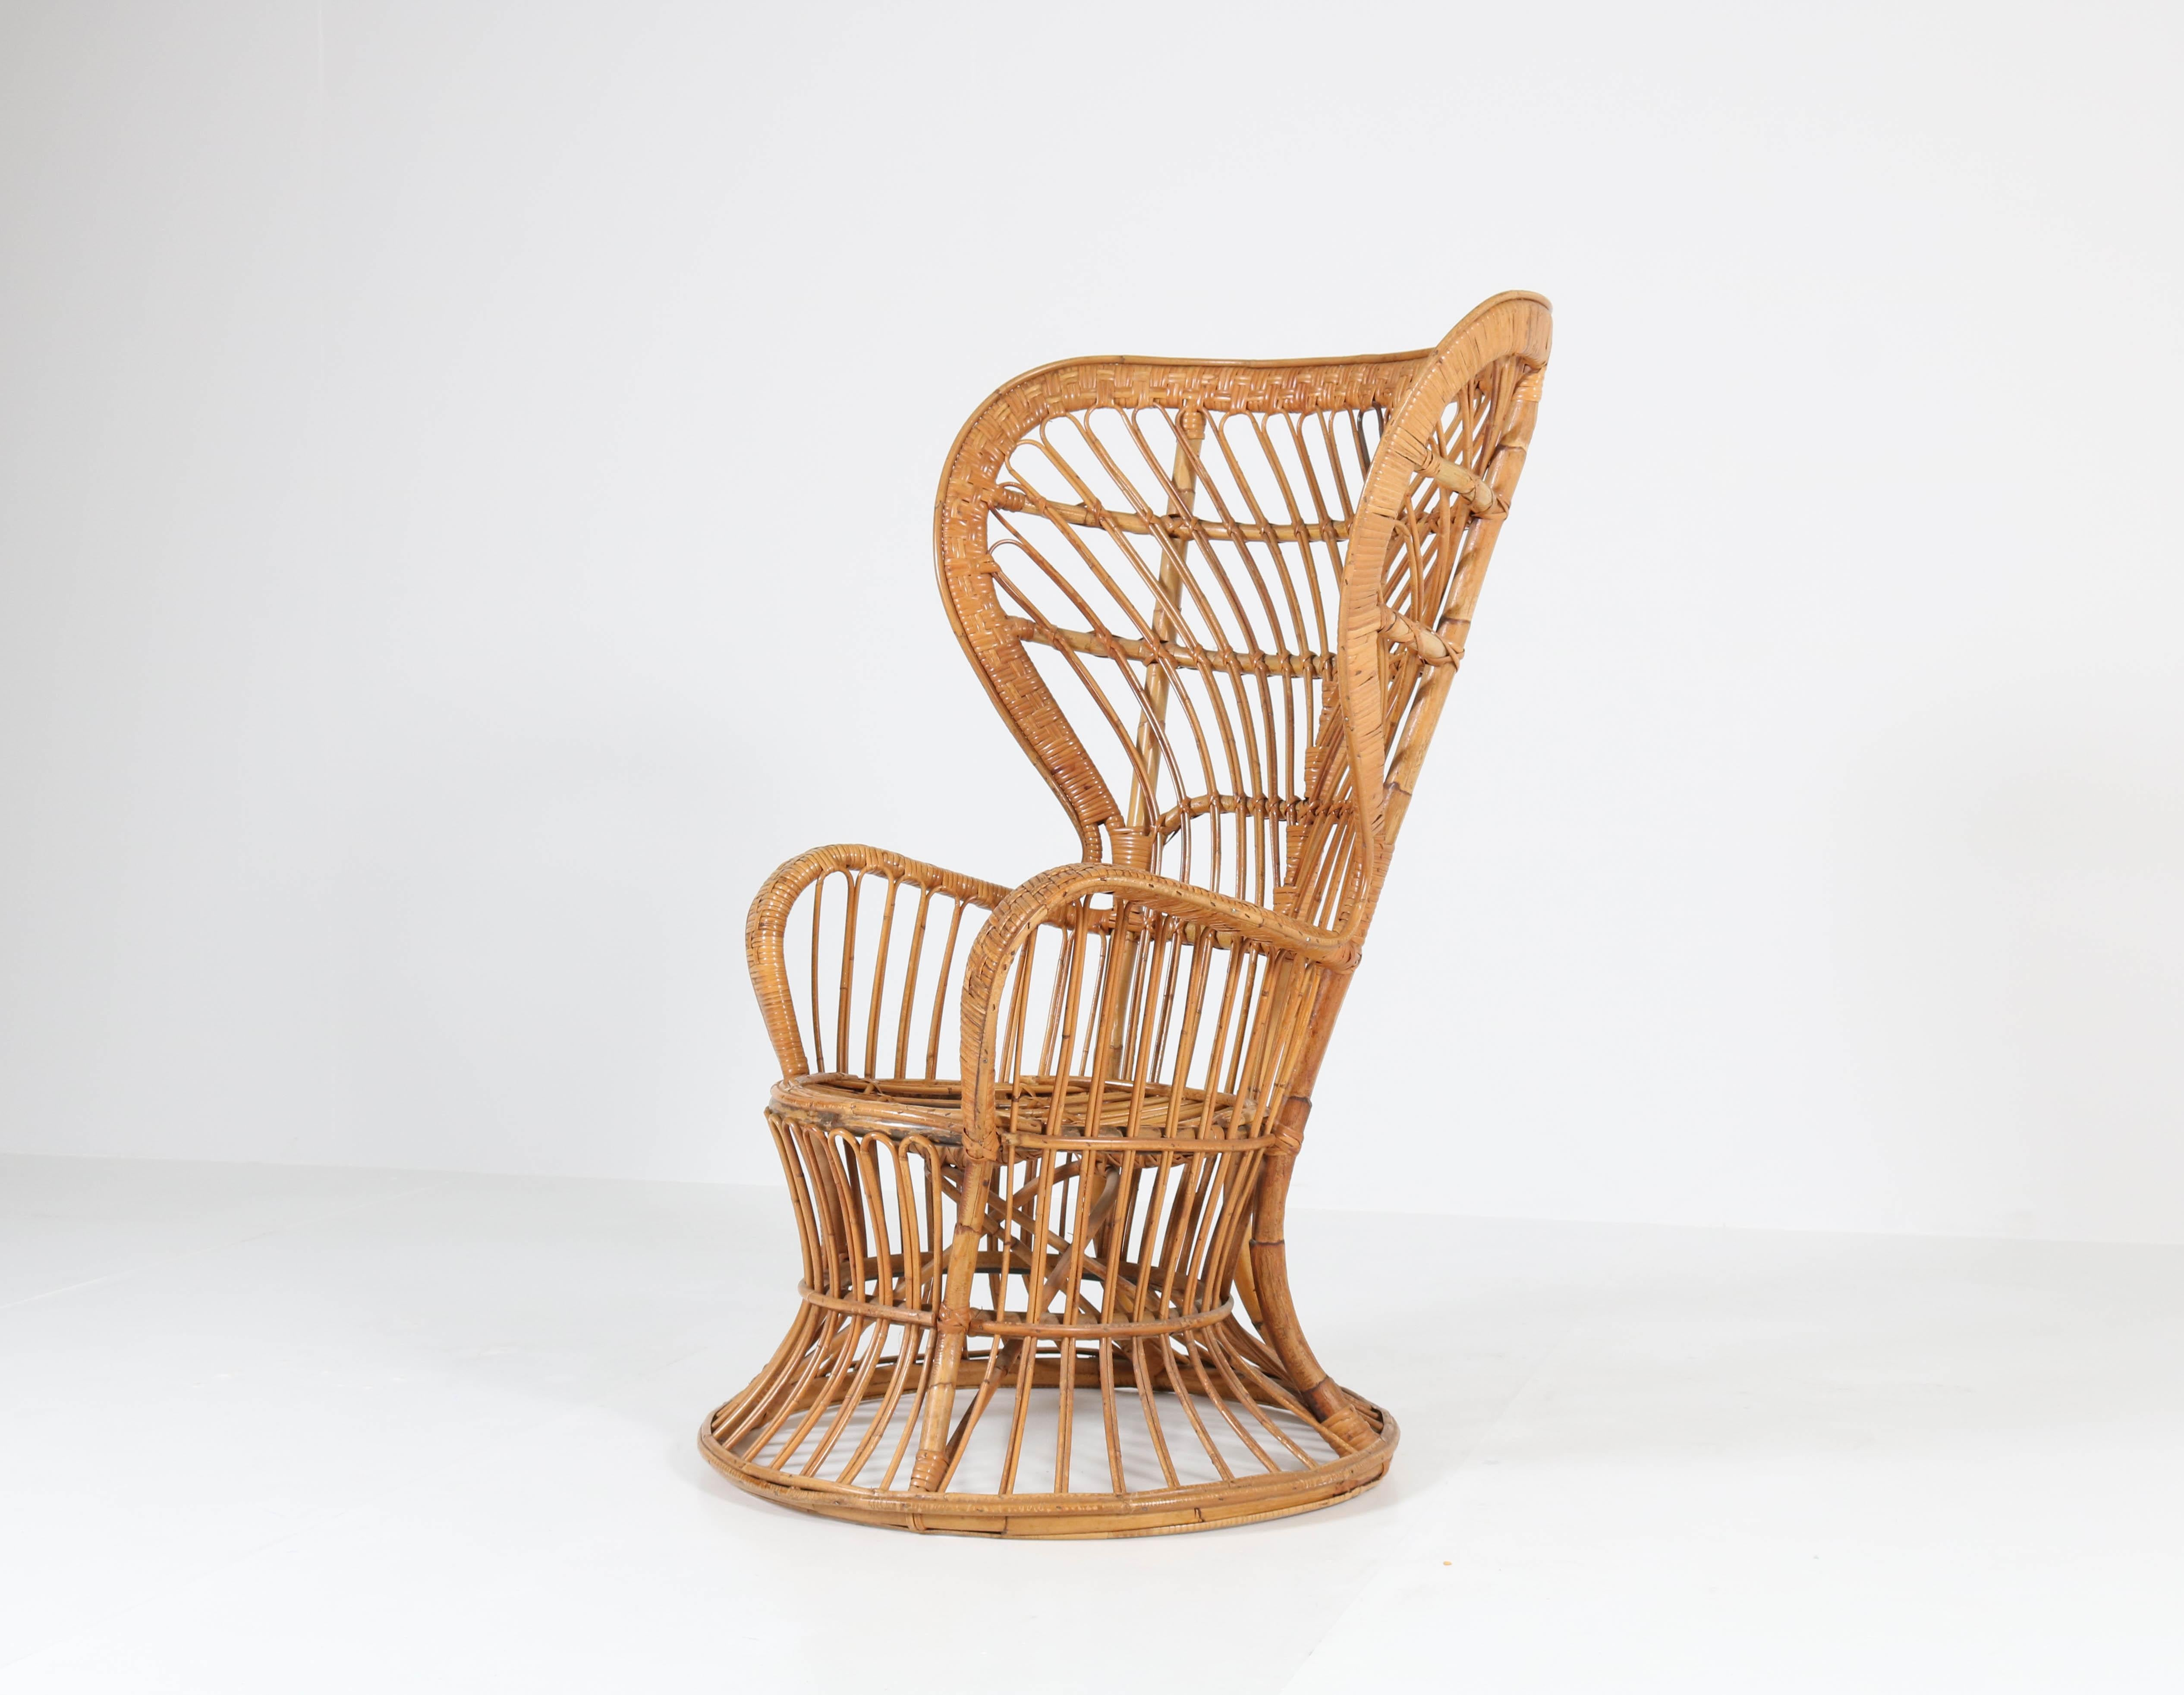 rattan wingback chairs barber chair parts brisbane italian mid century modern by lio carminati offered amsterdam modernism